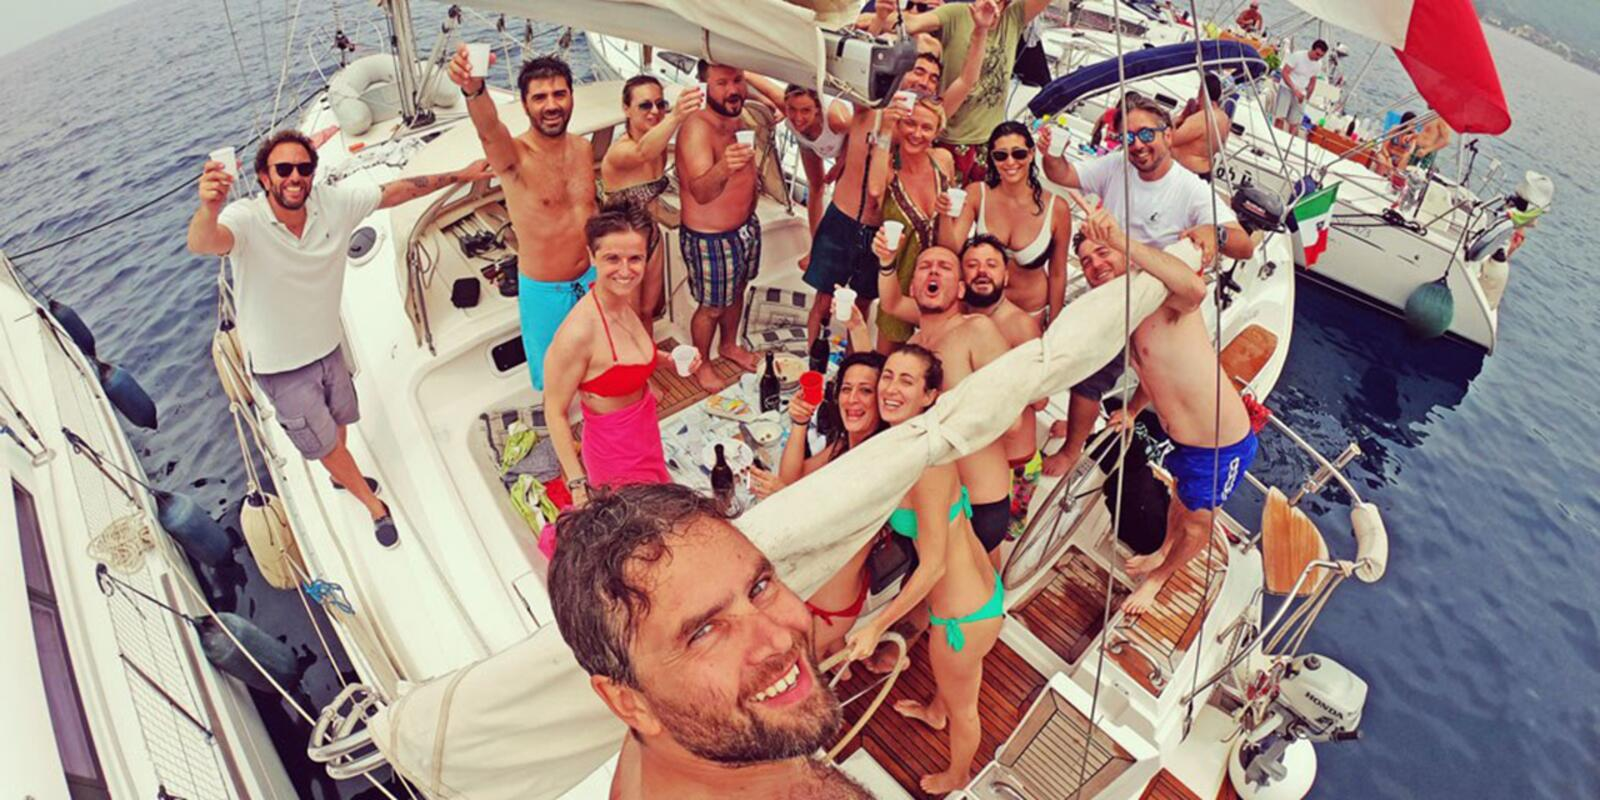 Summer Boat Party sans fin